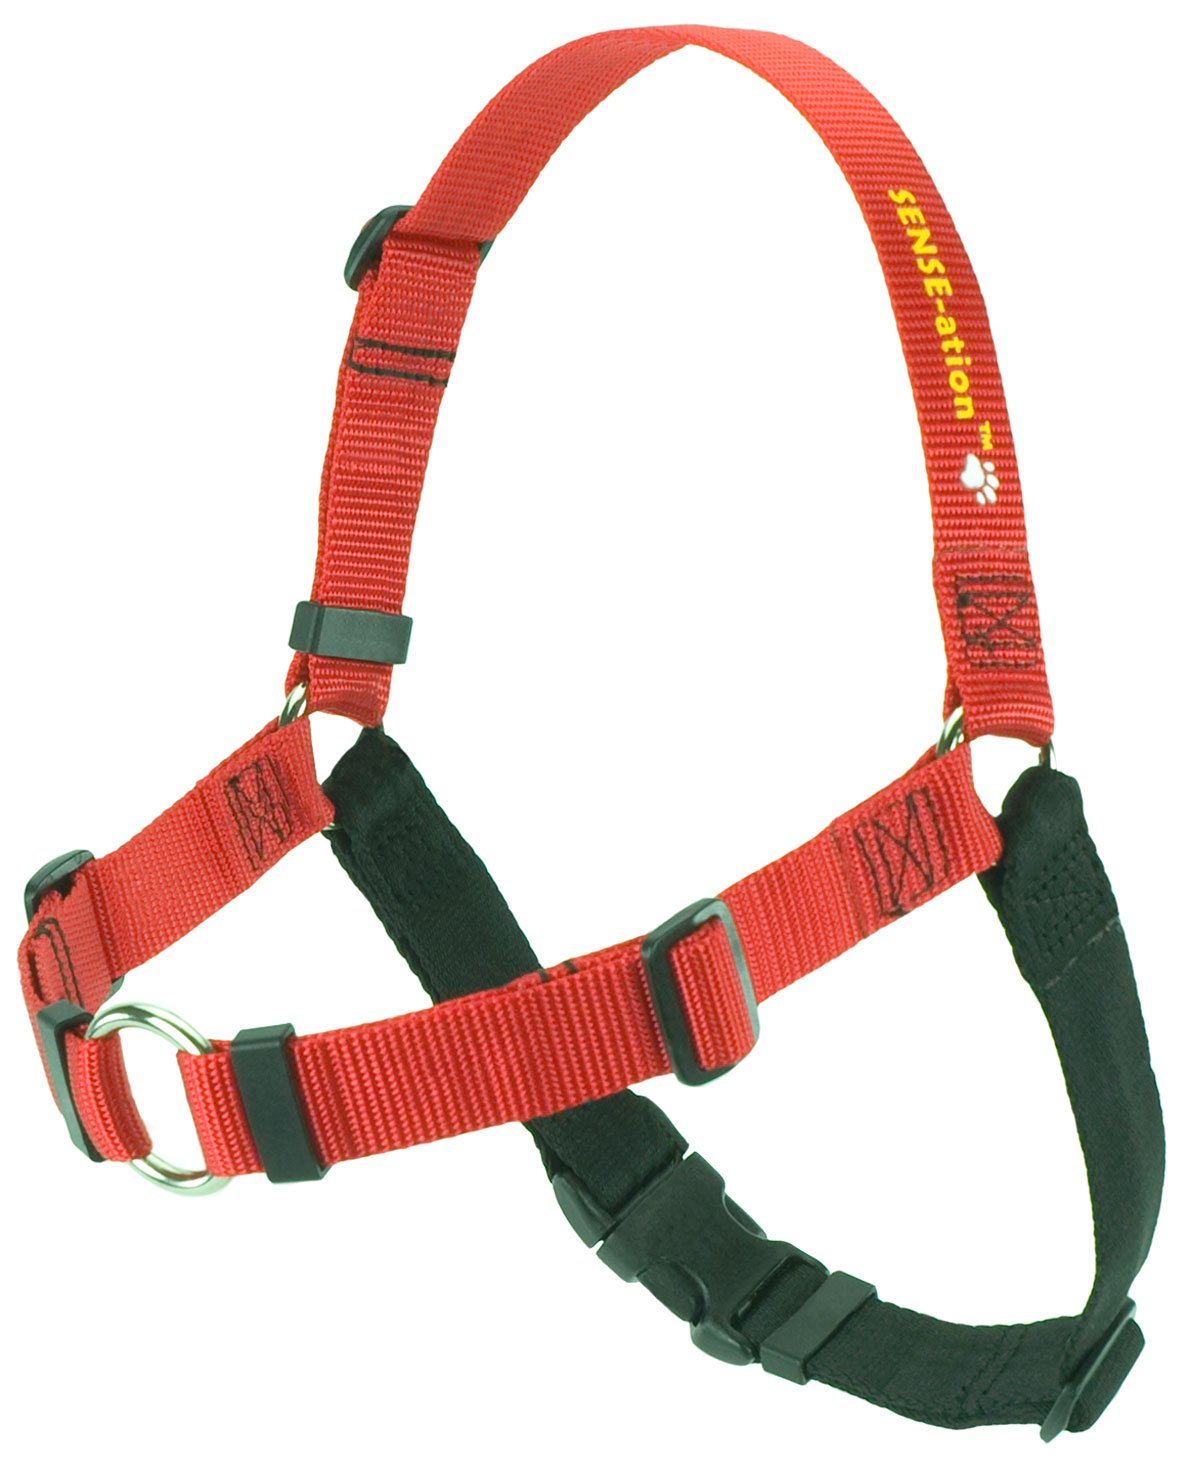 SENSE-ation No-Pull Dog Harness - Red, Large (Wide)